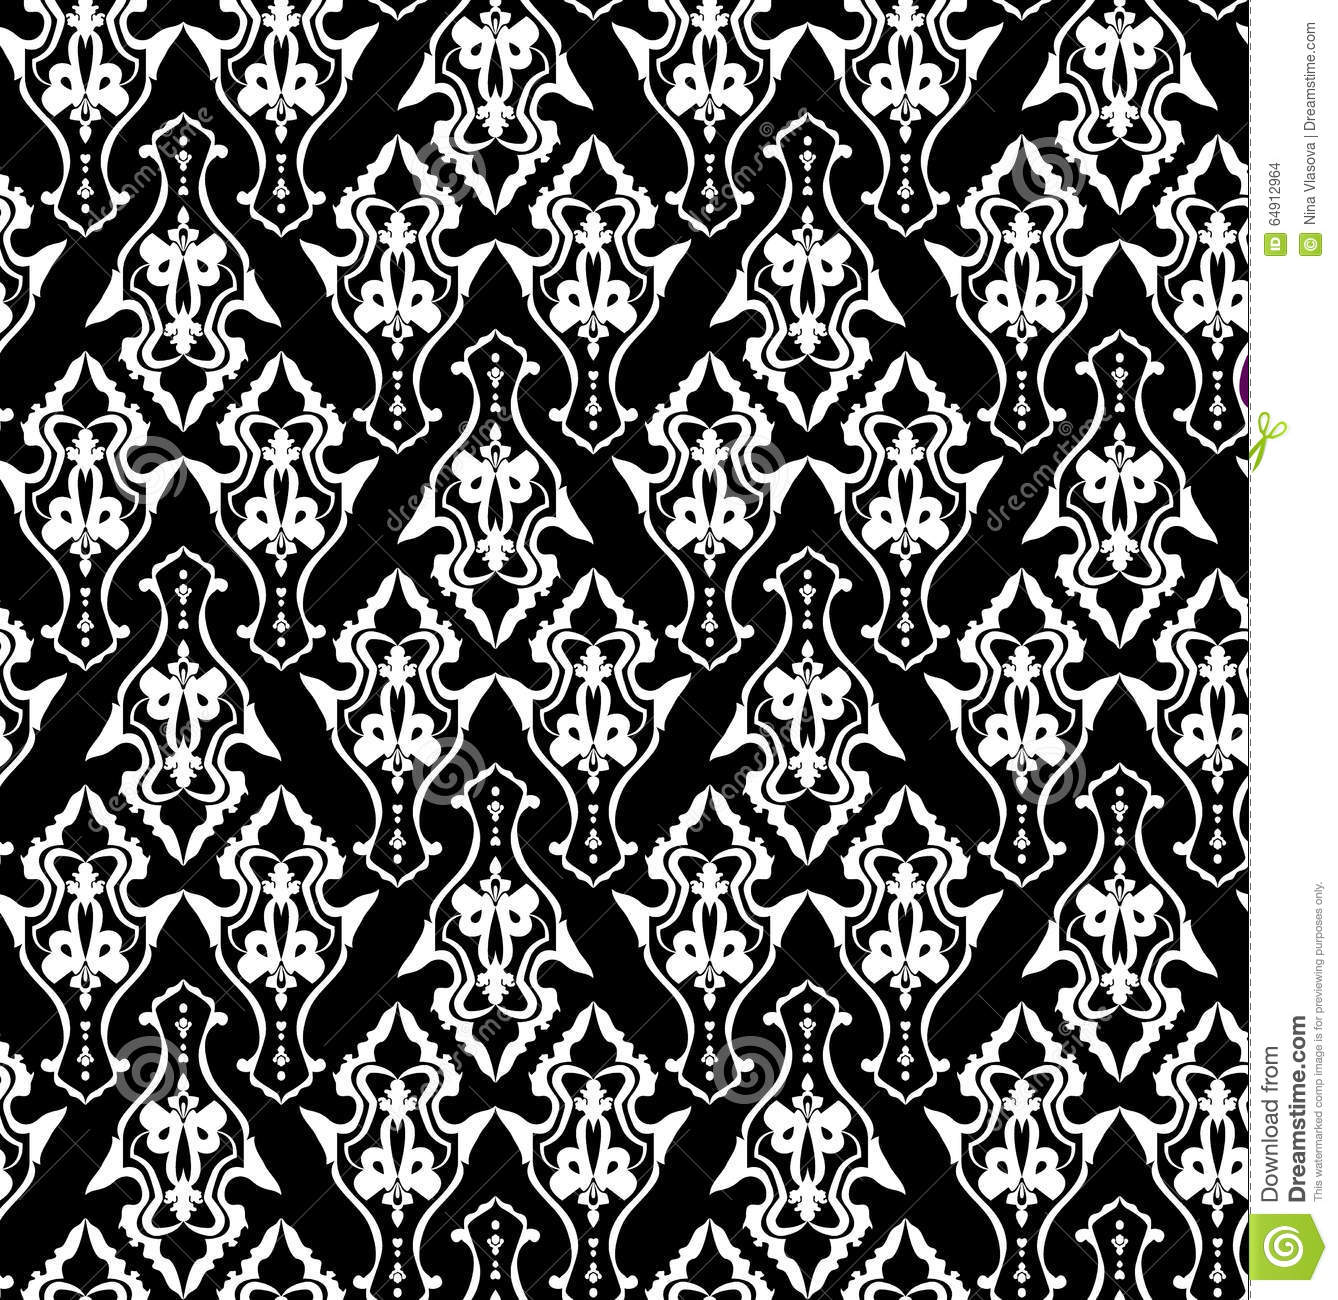 Royal Wallpaper With Classic Black And White Seamless Floral